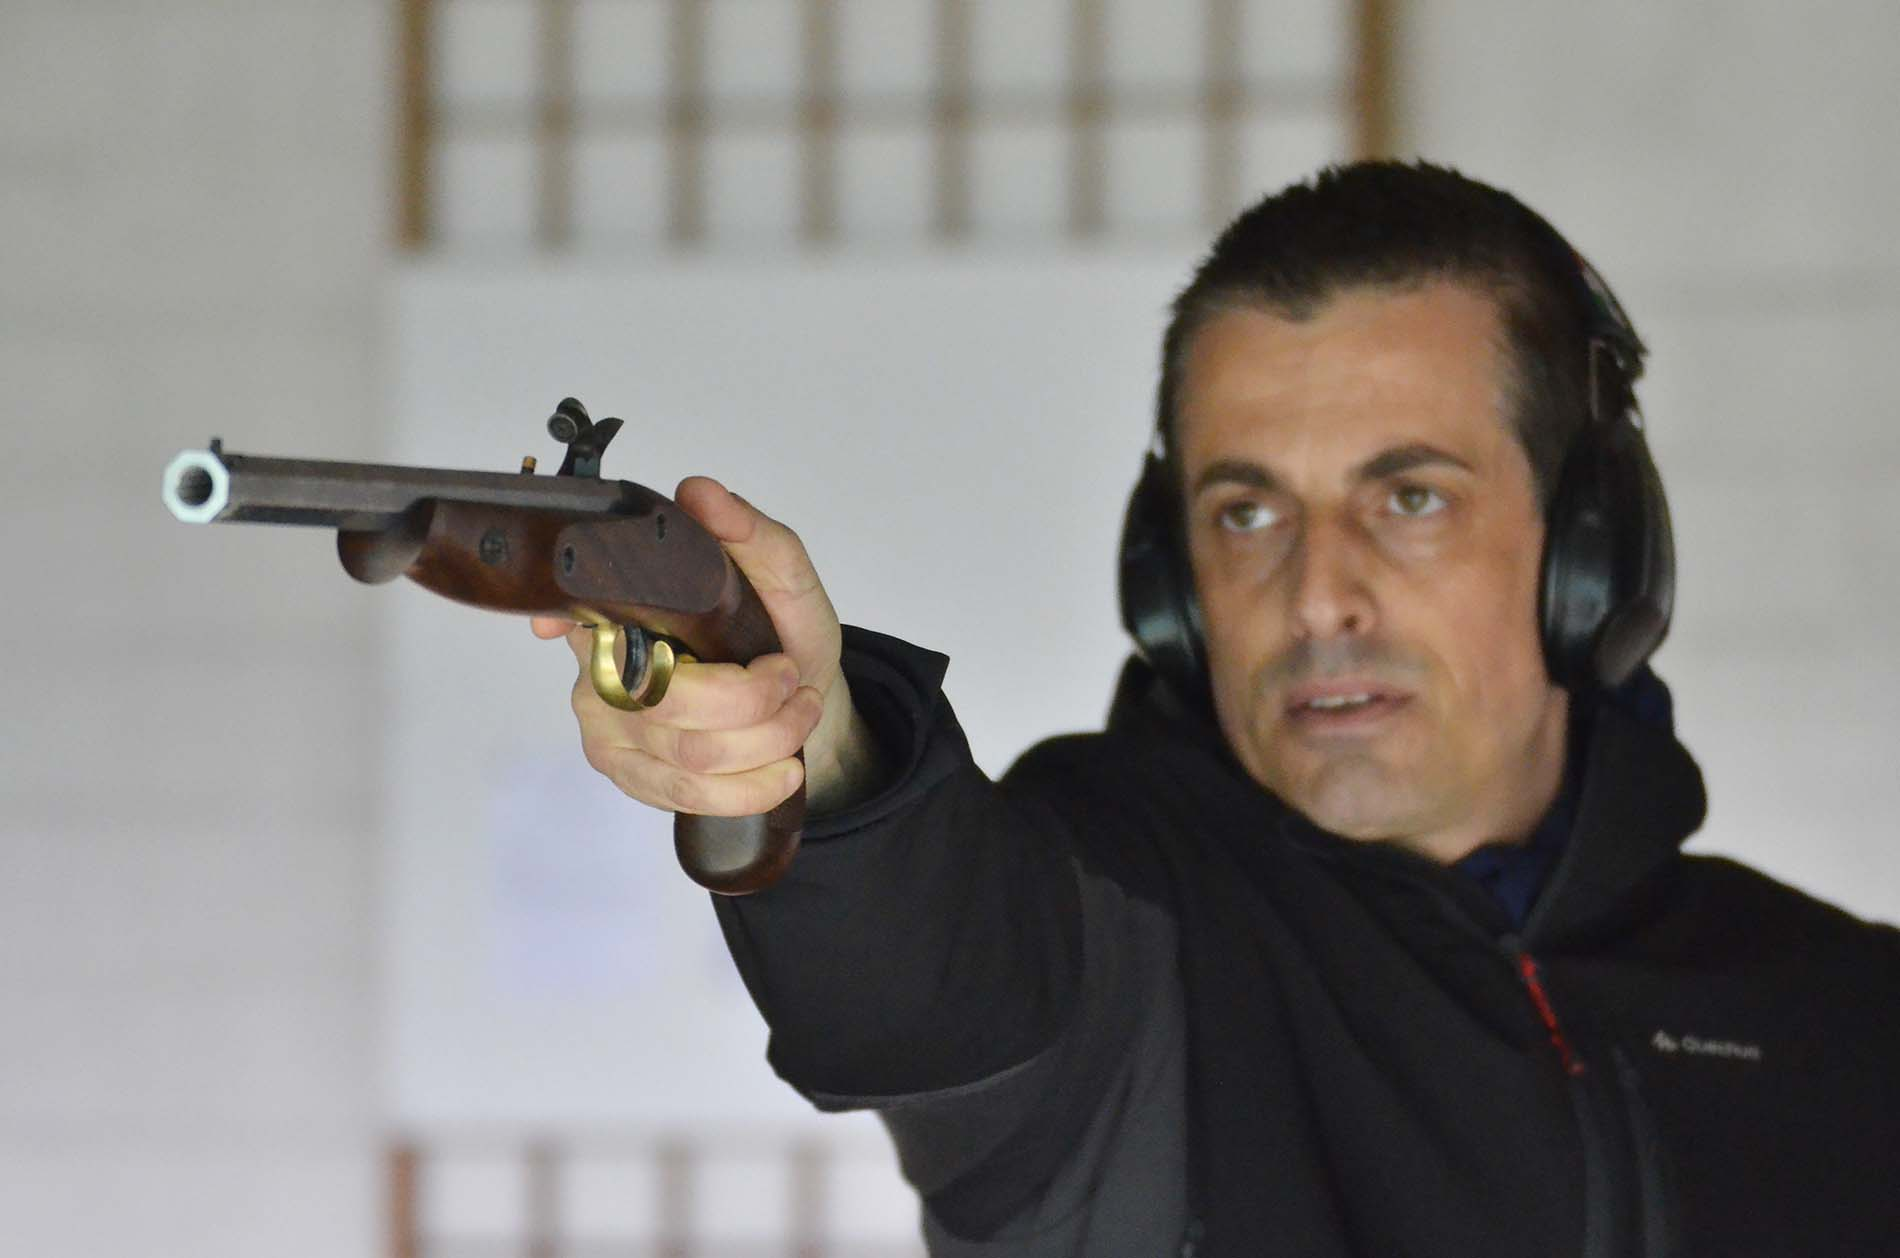 Pedersoli Continental Target shooting test.